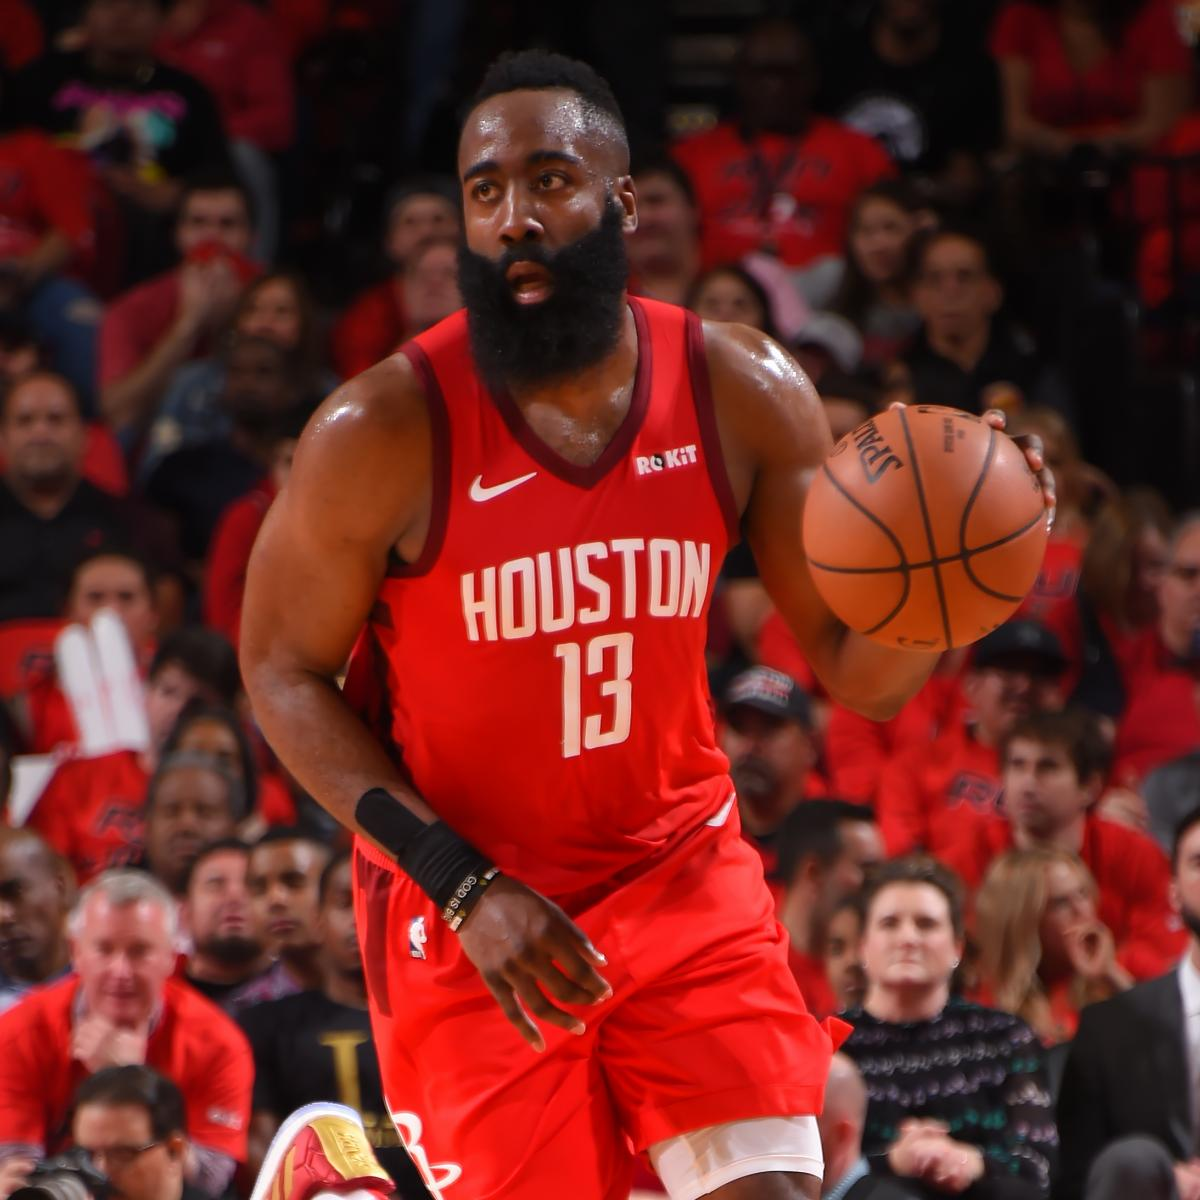 James Harden Drops 29 As Rockets Cruise To Blowout Win Vs